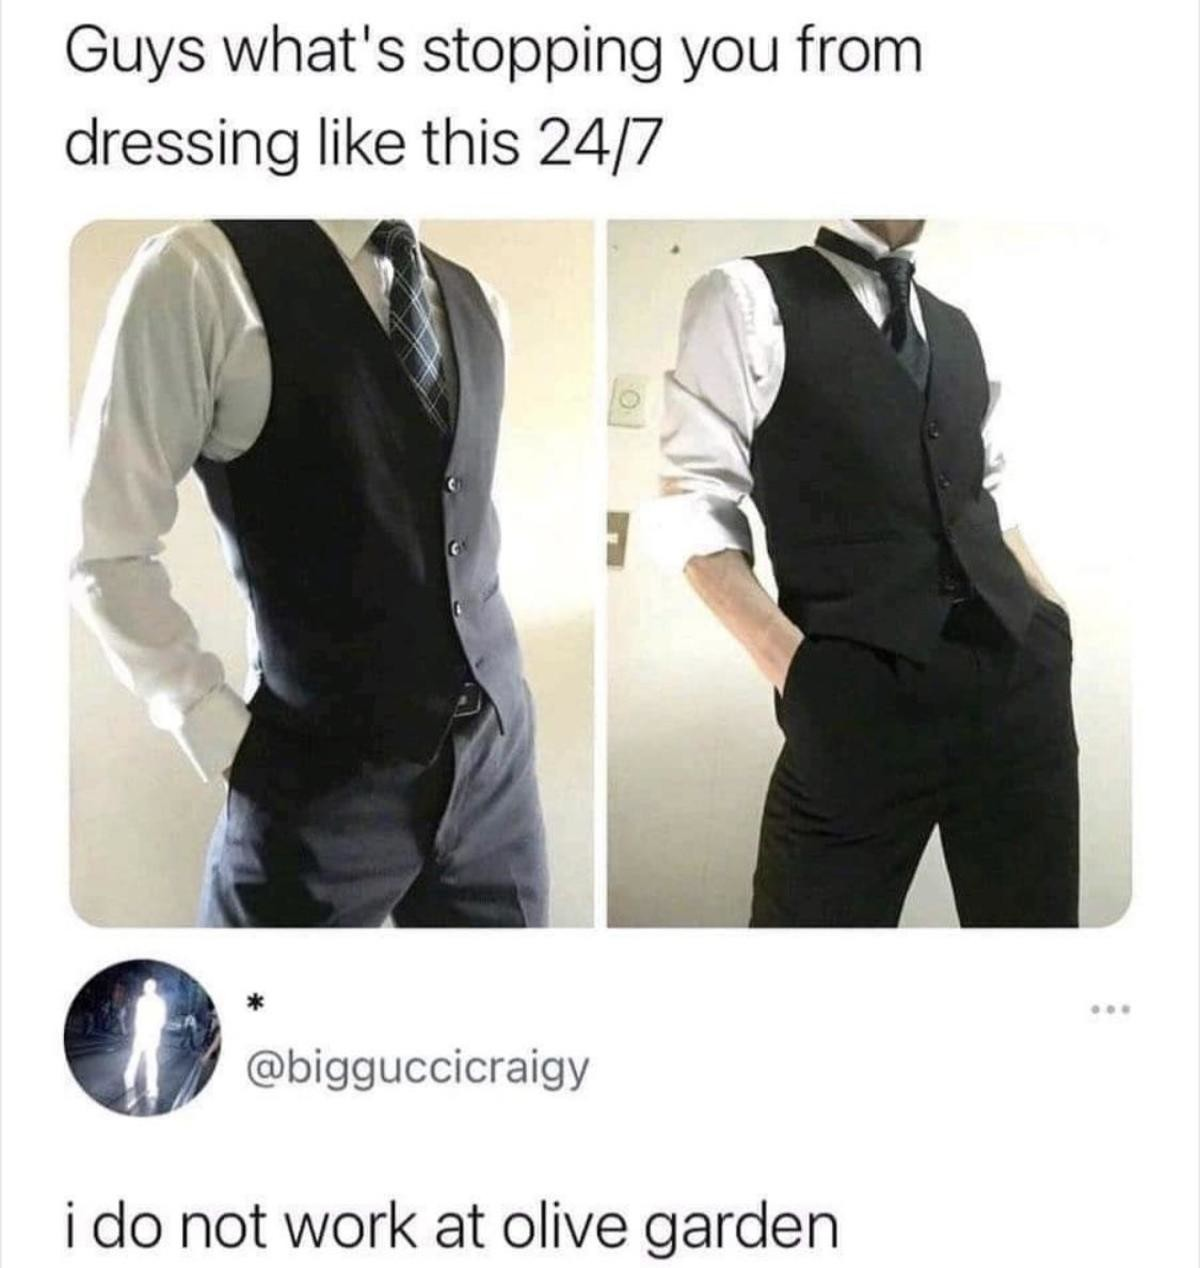 wearing a suit socially. .. mens cloths are so boring wish i could dress in a top hat and cane without being called a cunt in maccas